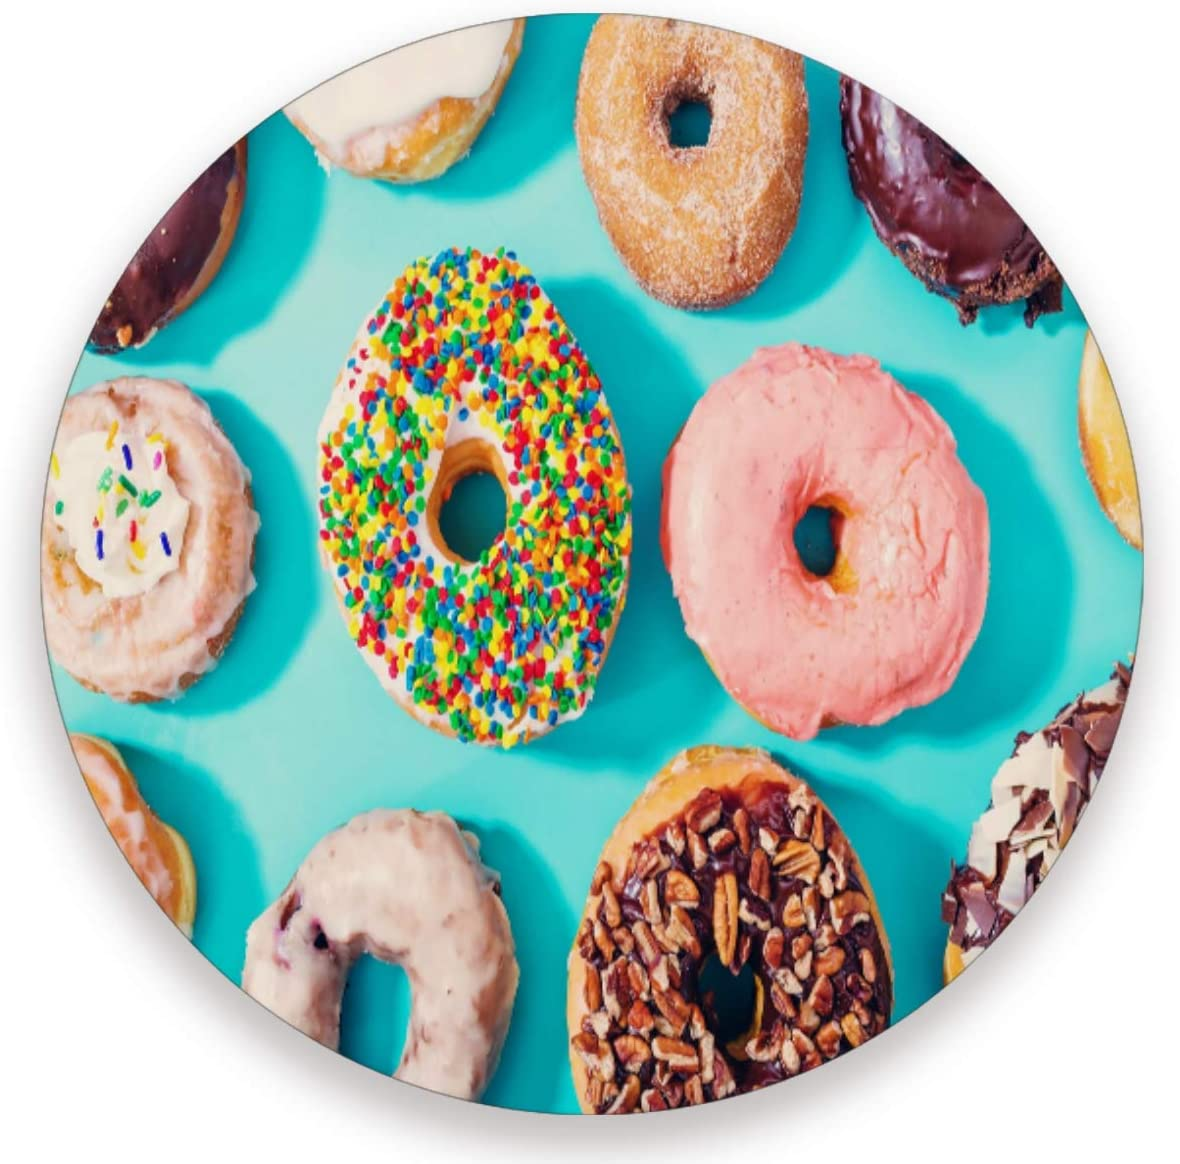 Olinyou Colorful Donut Blue Coaster for Drinks 1 Pieces Absorbent Ceramic Stone Coasters with Cork Base